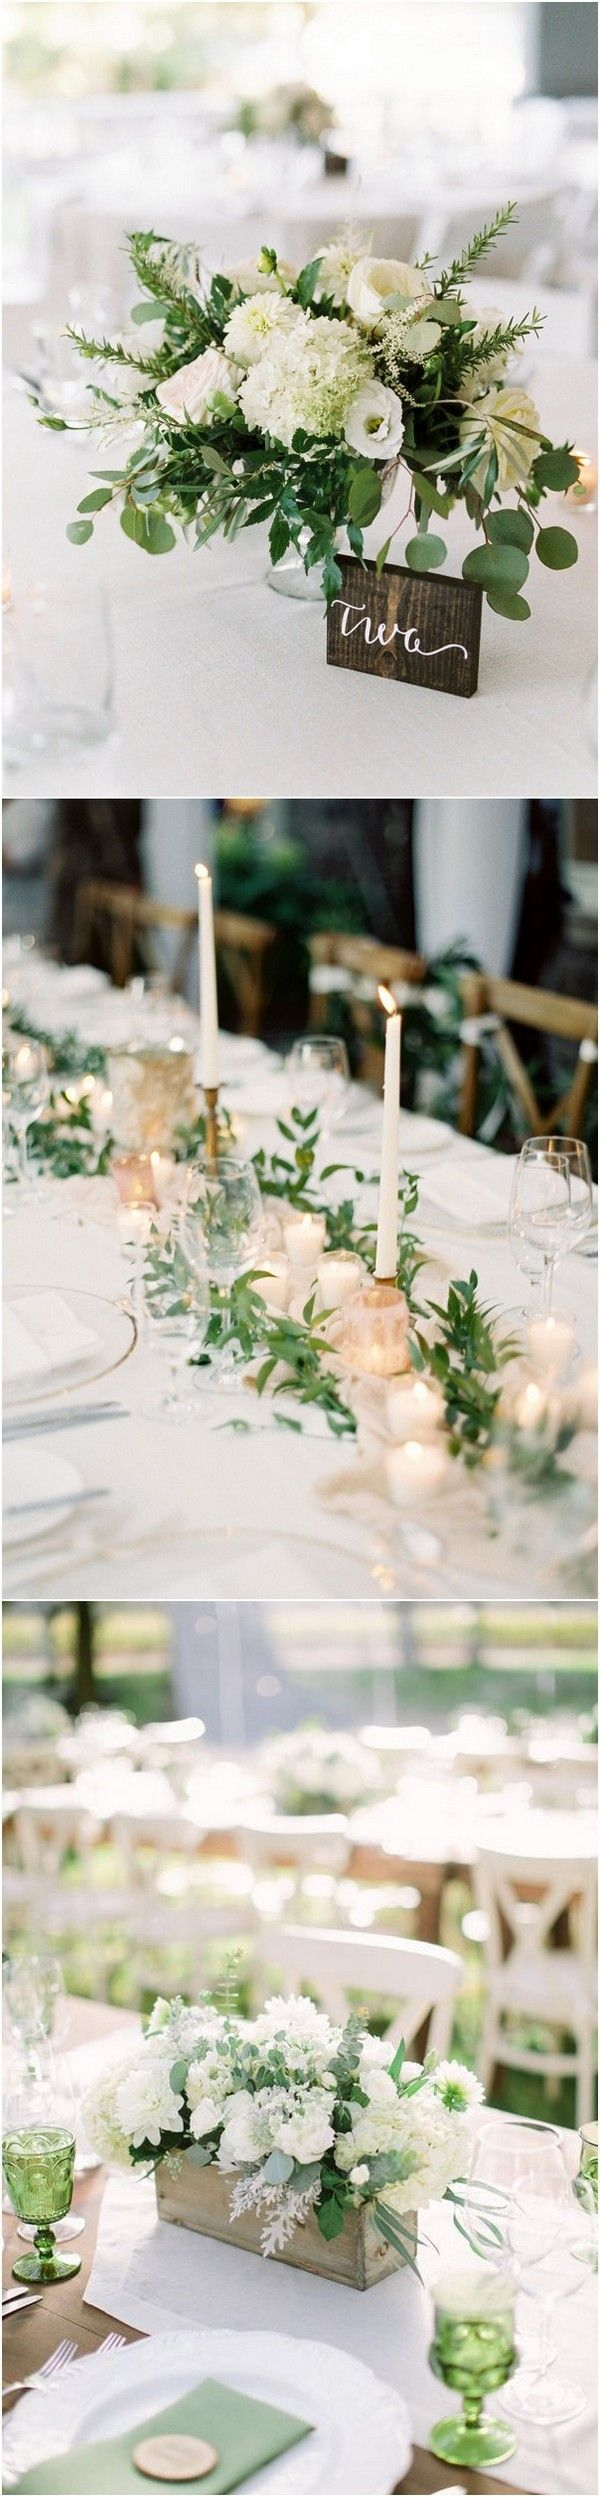 Wedding decoration ideas for tables  Trending Chic White and Green Wedding Centerpiece Ideas  Page